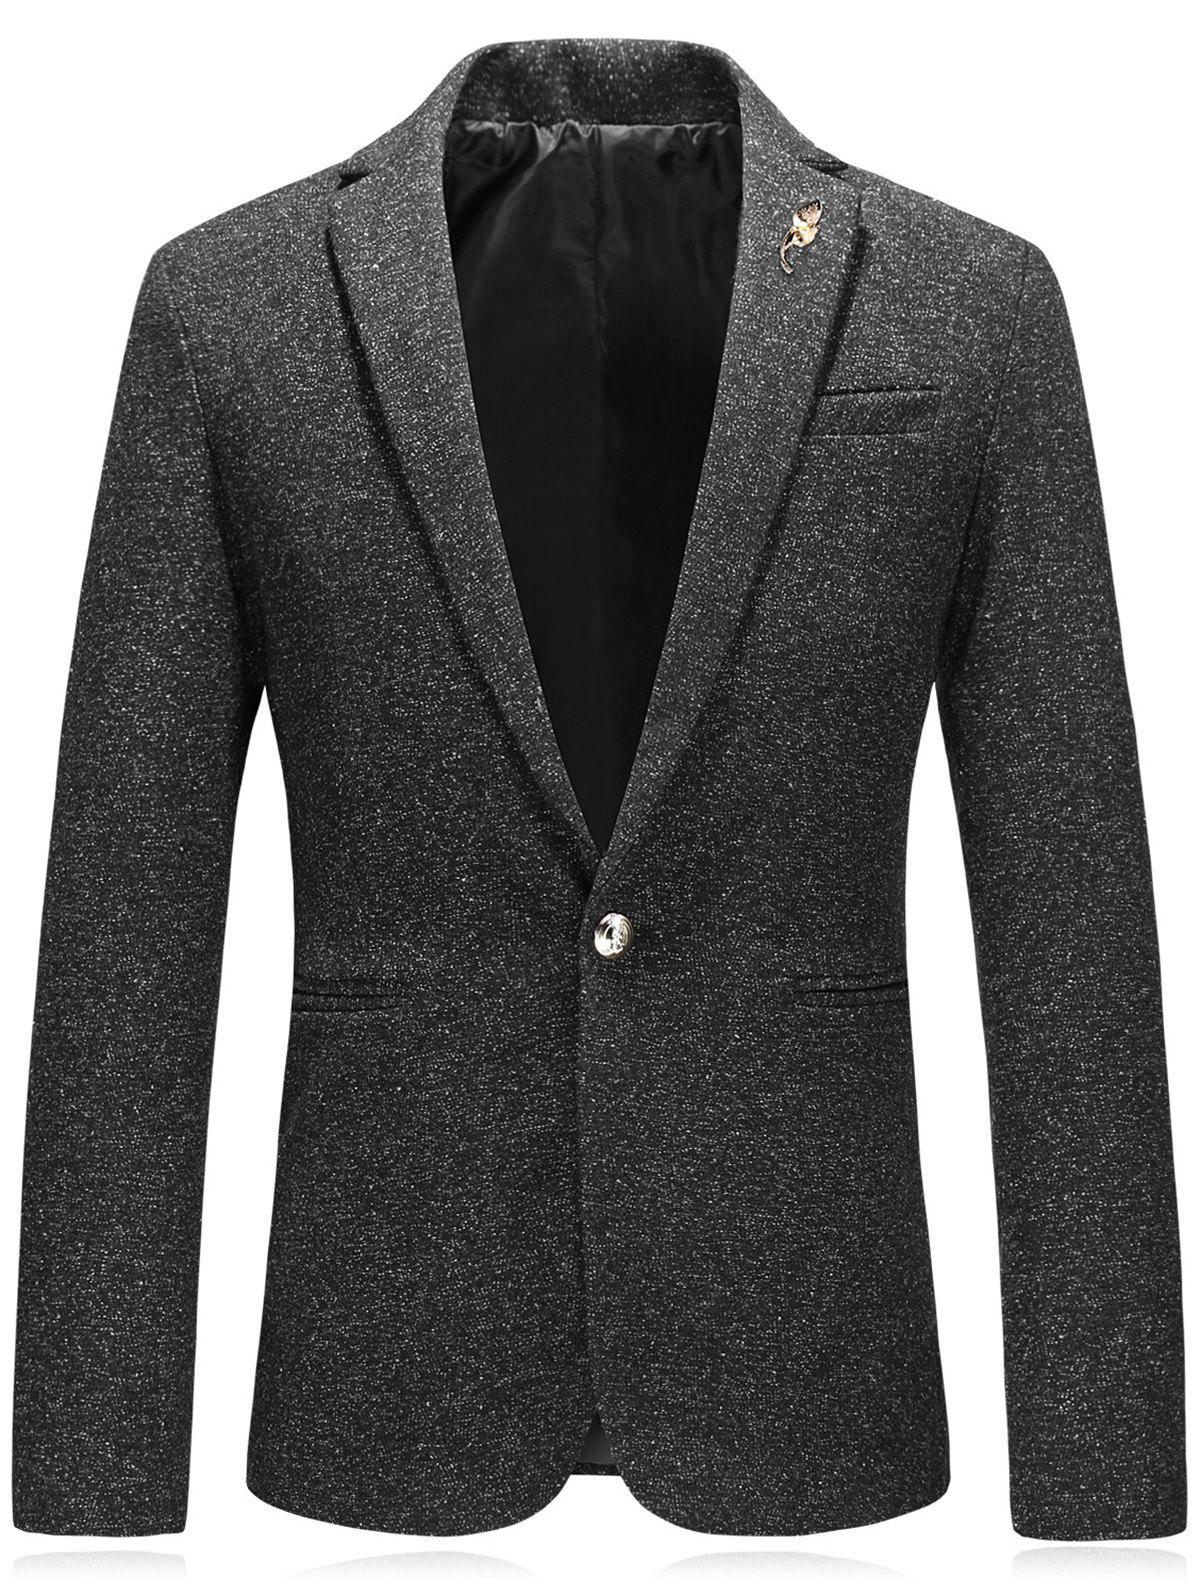 Embellished Edging Woolen Blazer - DEEP GRAY 2XL